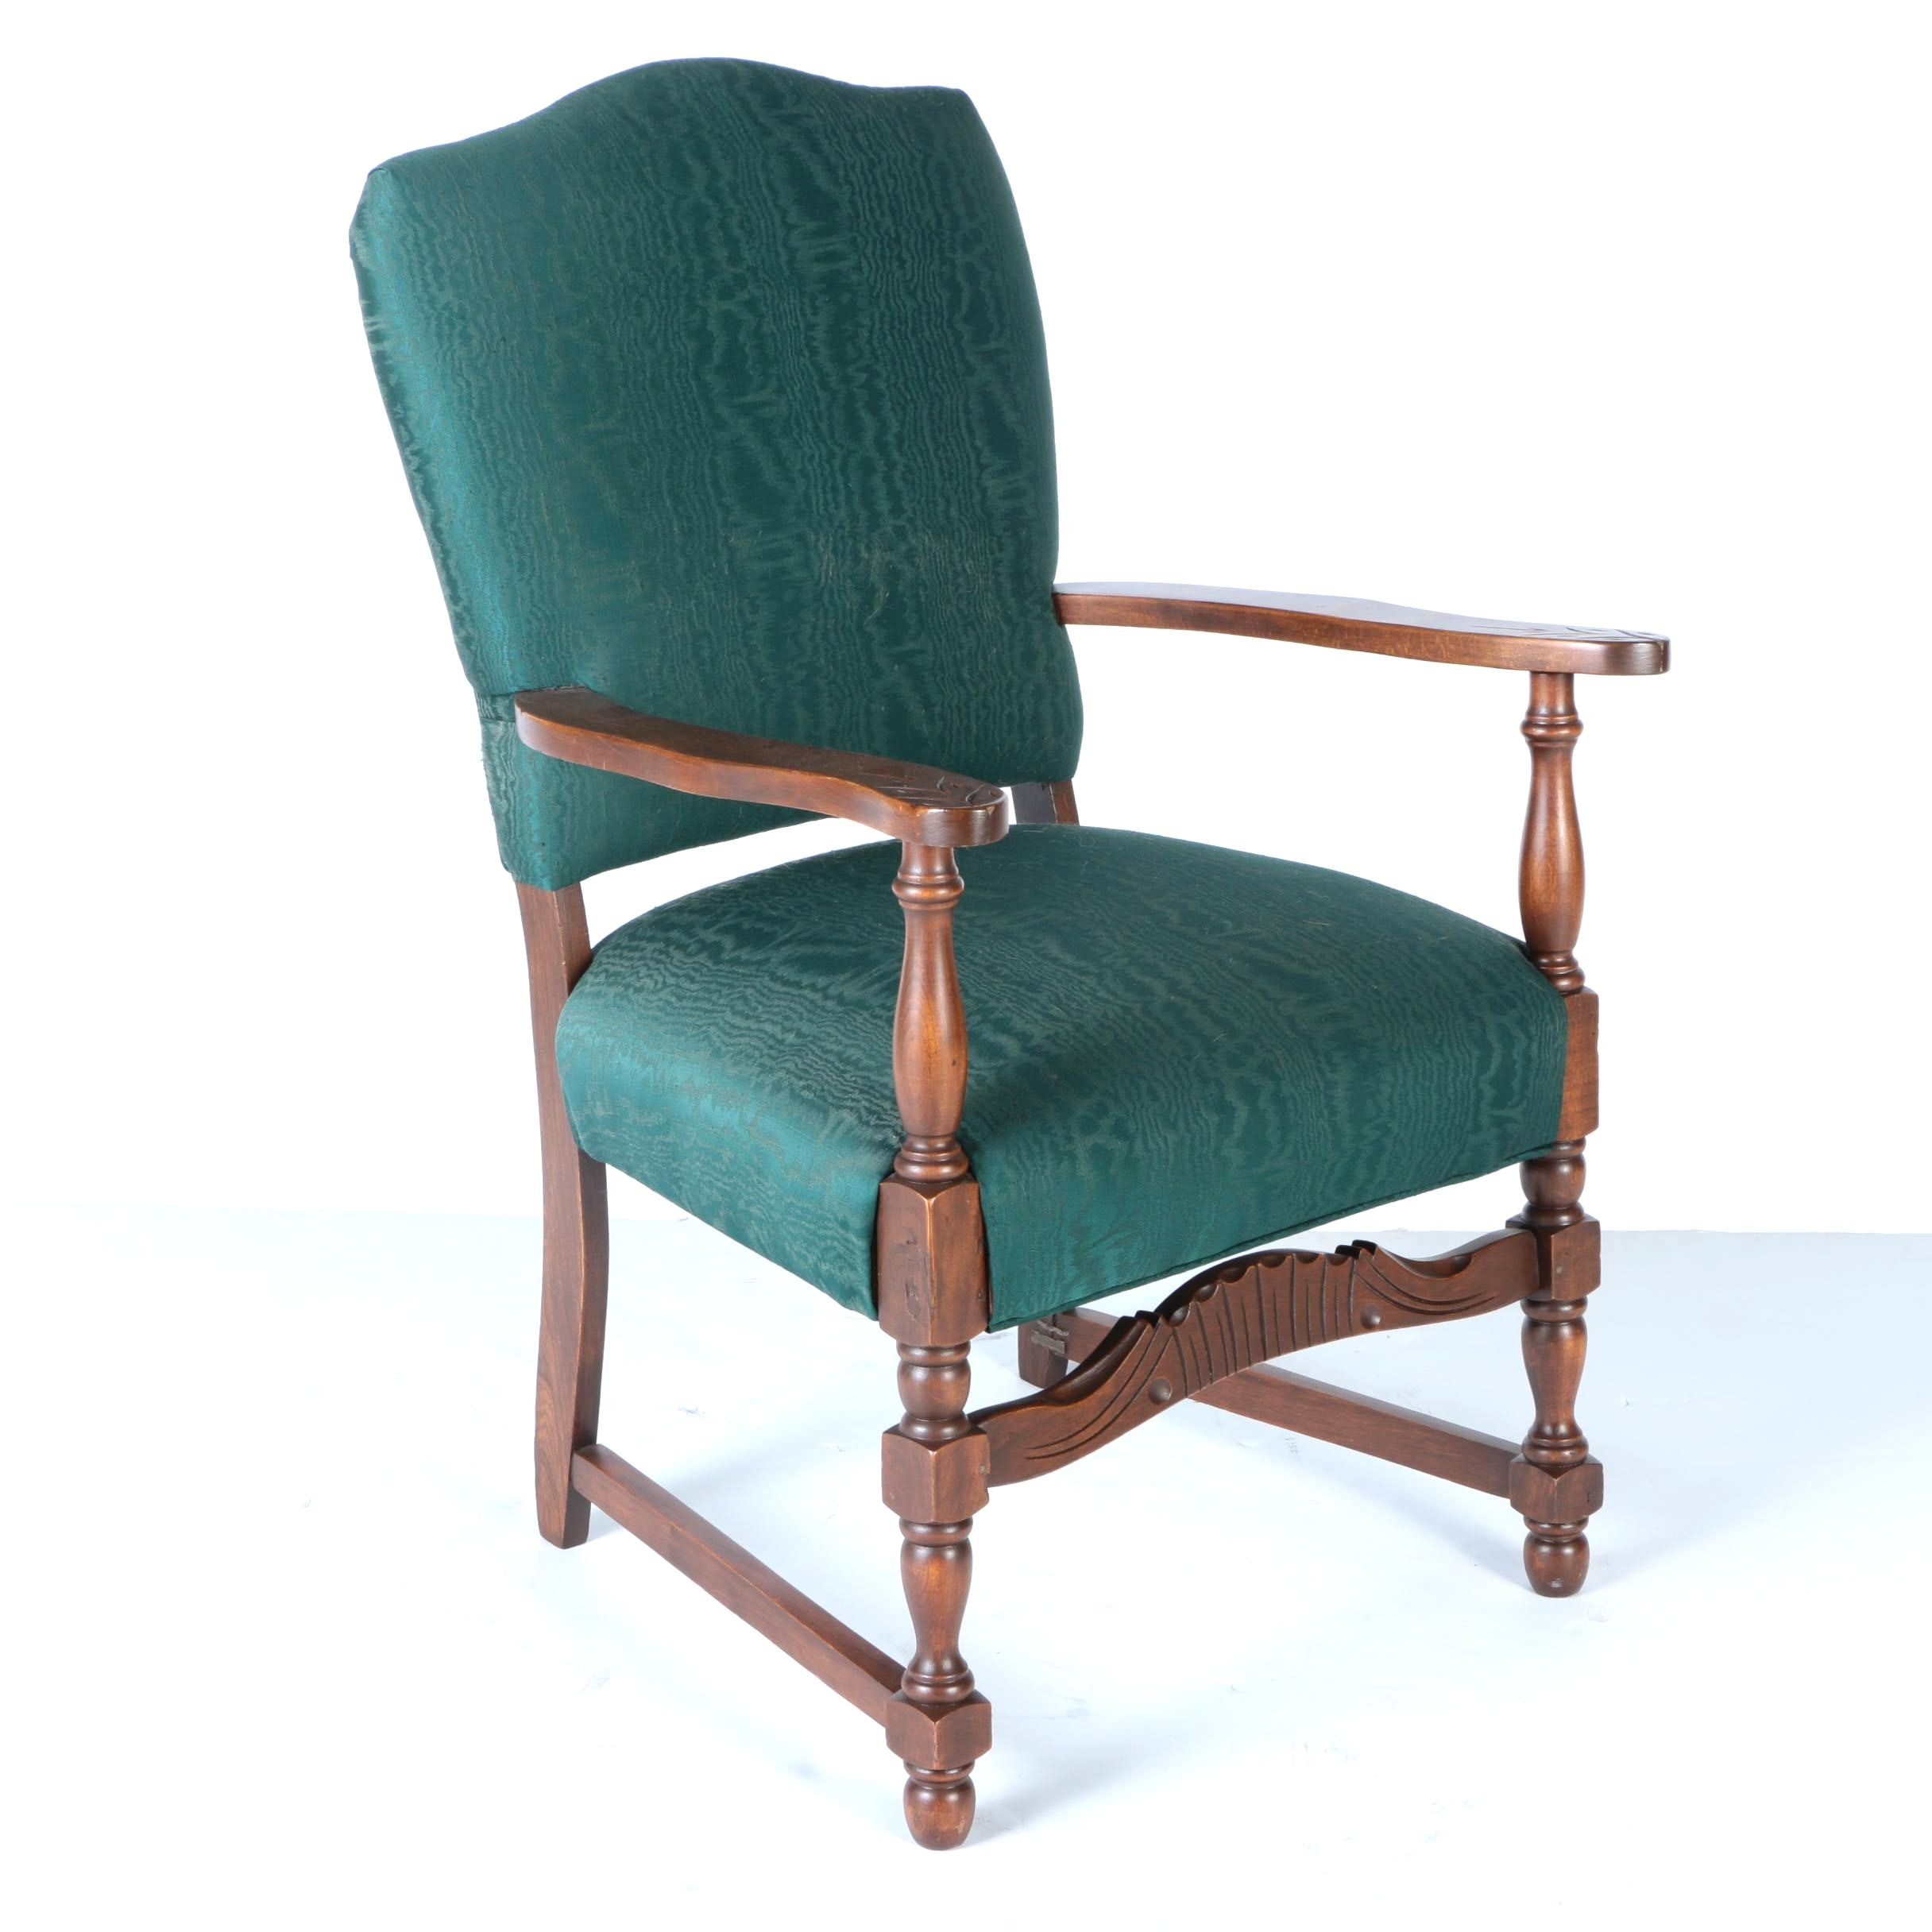 Armchair with Green Upholstery